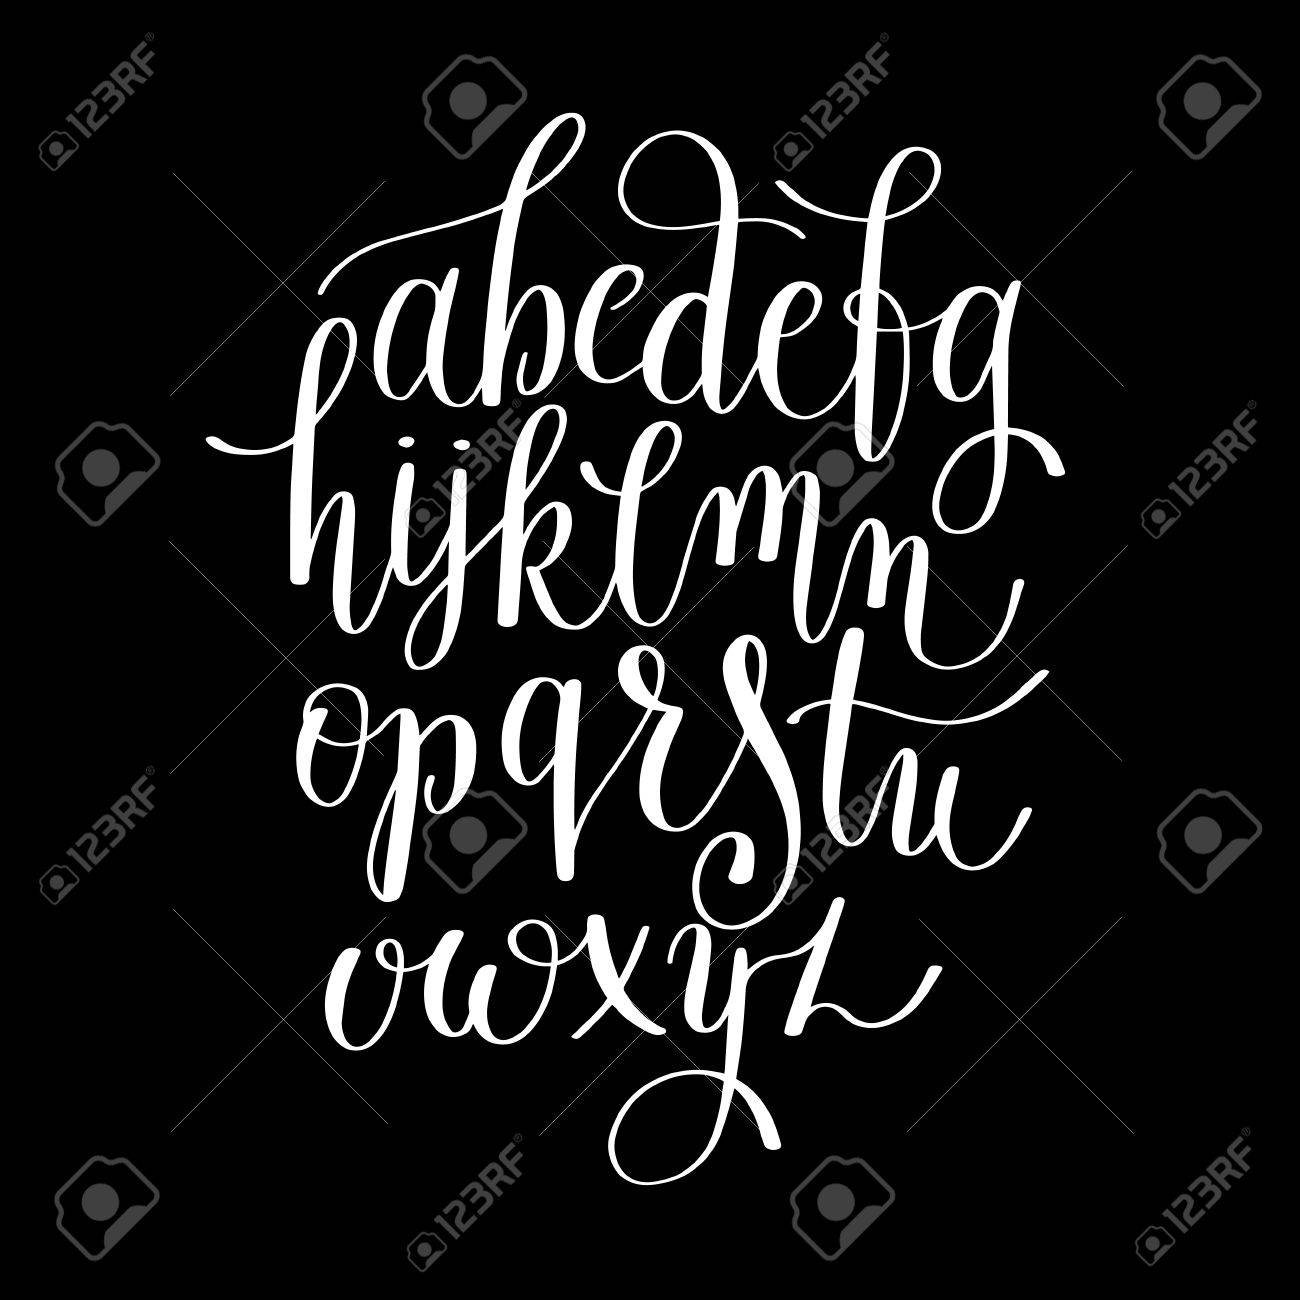 black and white hand lettering alphabet design, handwritten brush